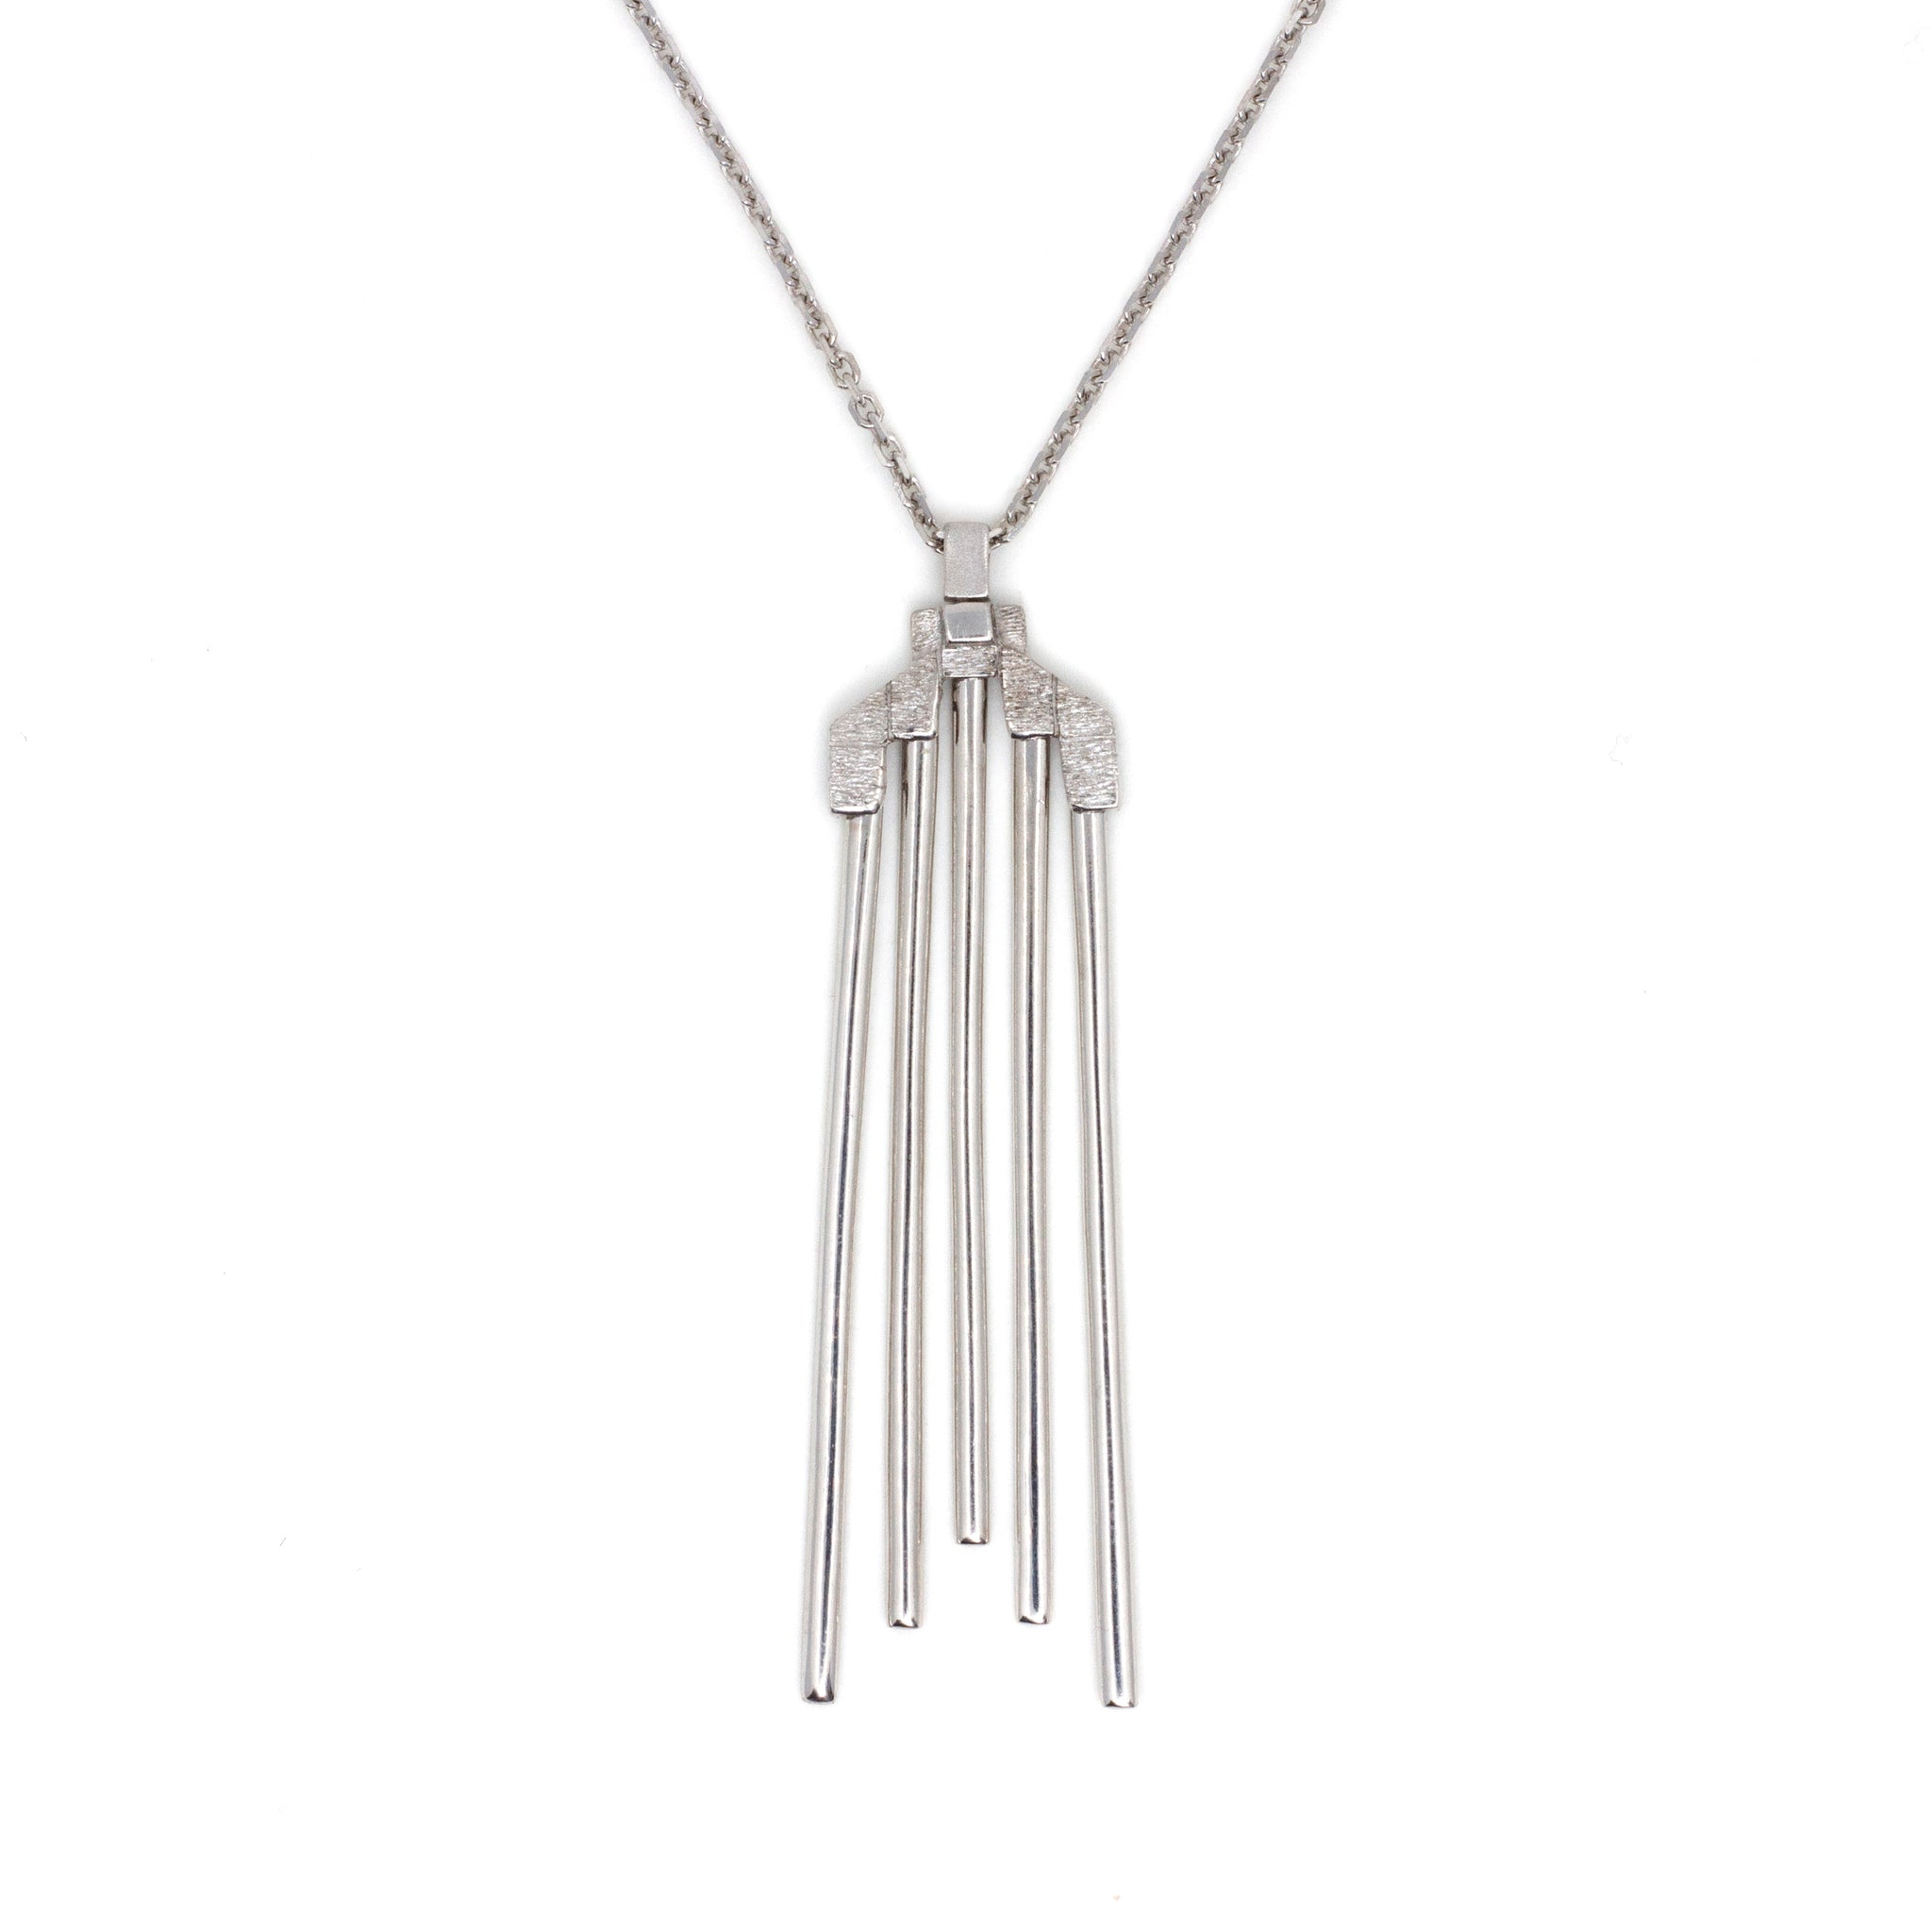 Silver Sleek Cylinders Necklace